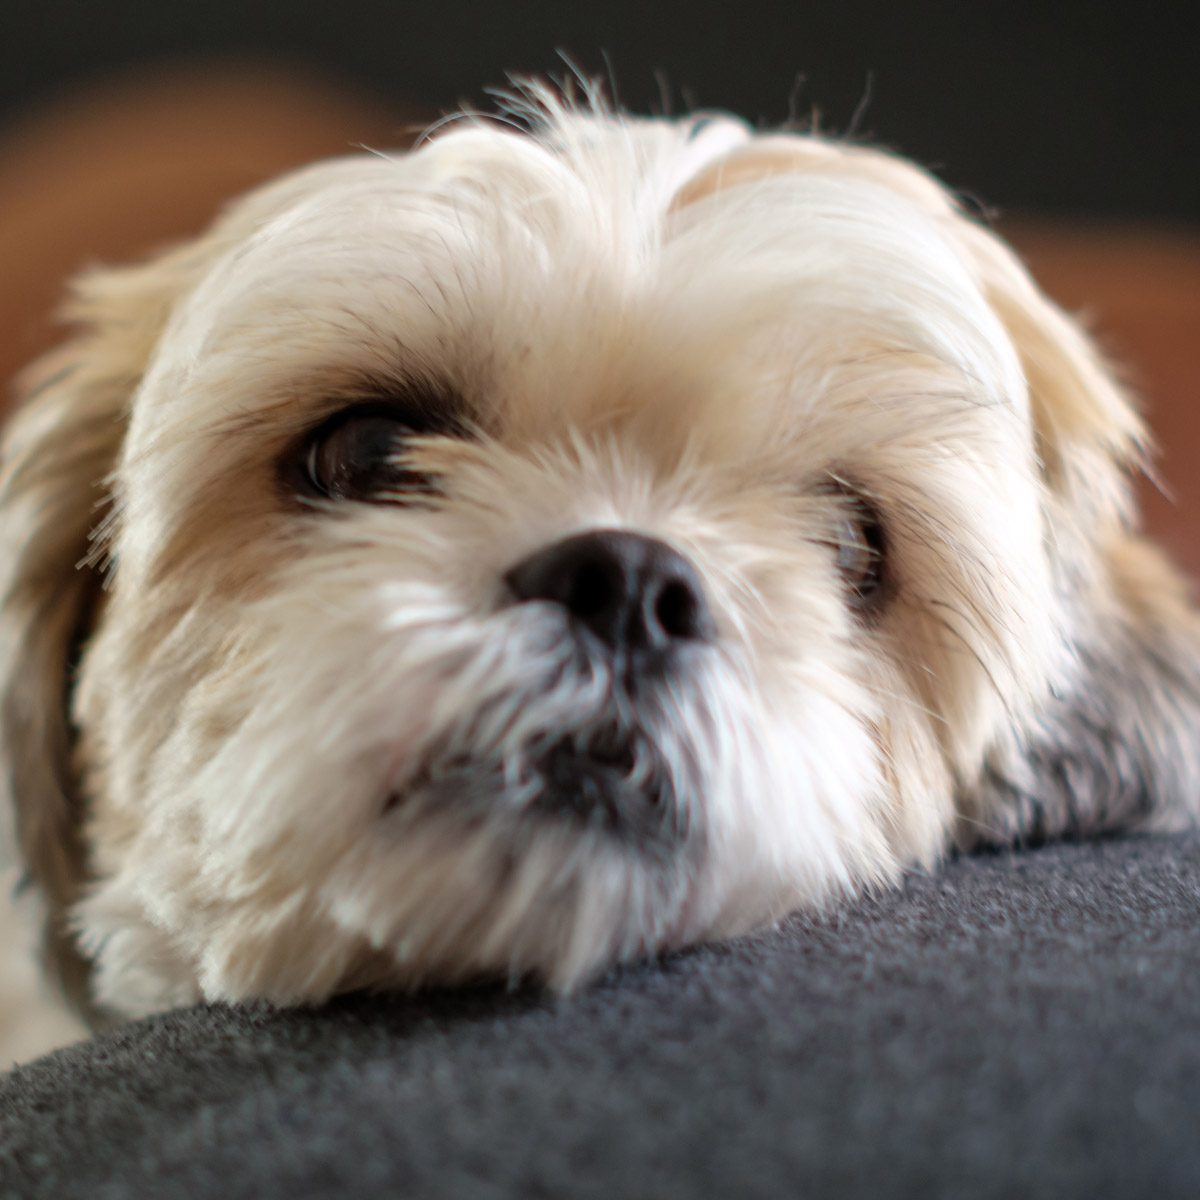 Close-up-White-shih-tzu-laying-on-the-floor